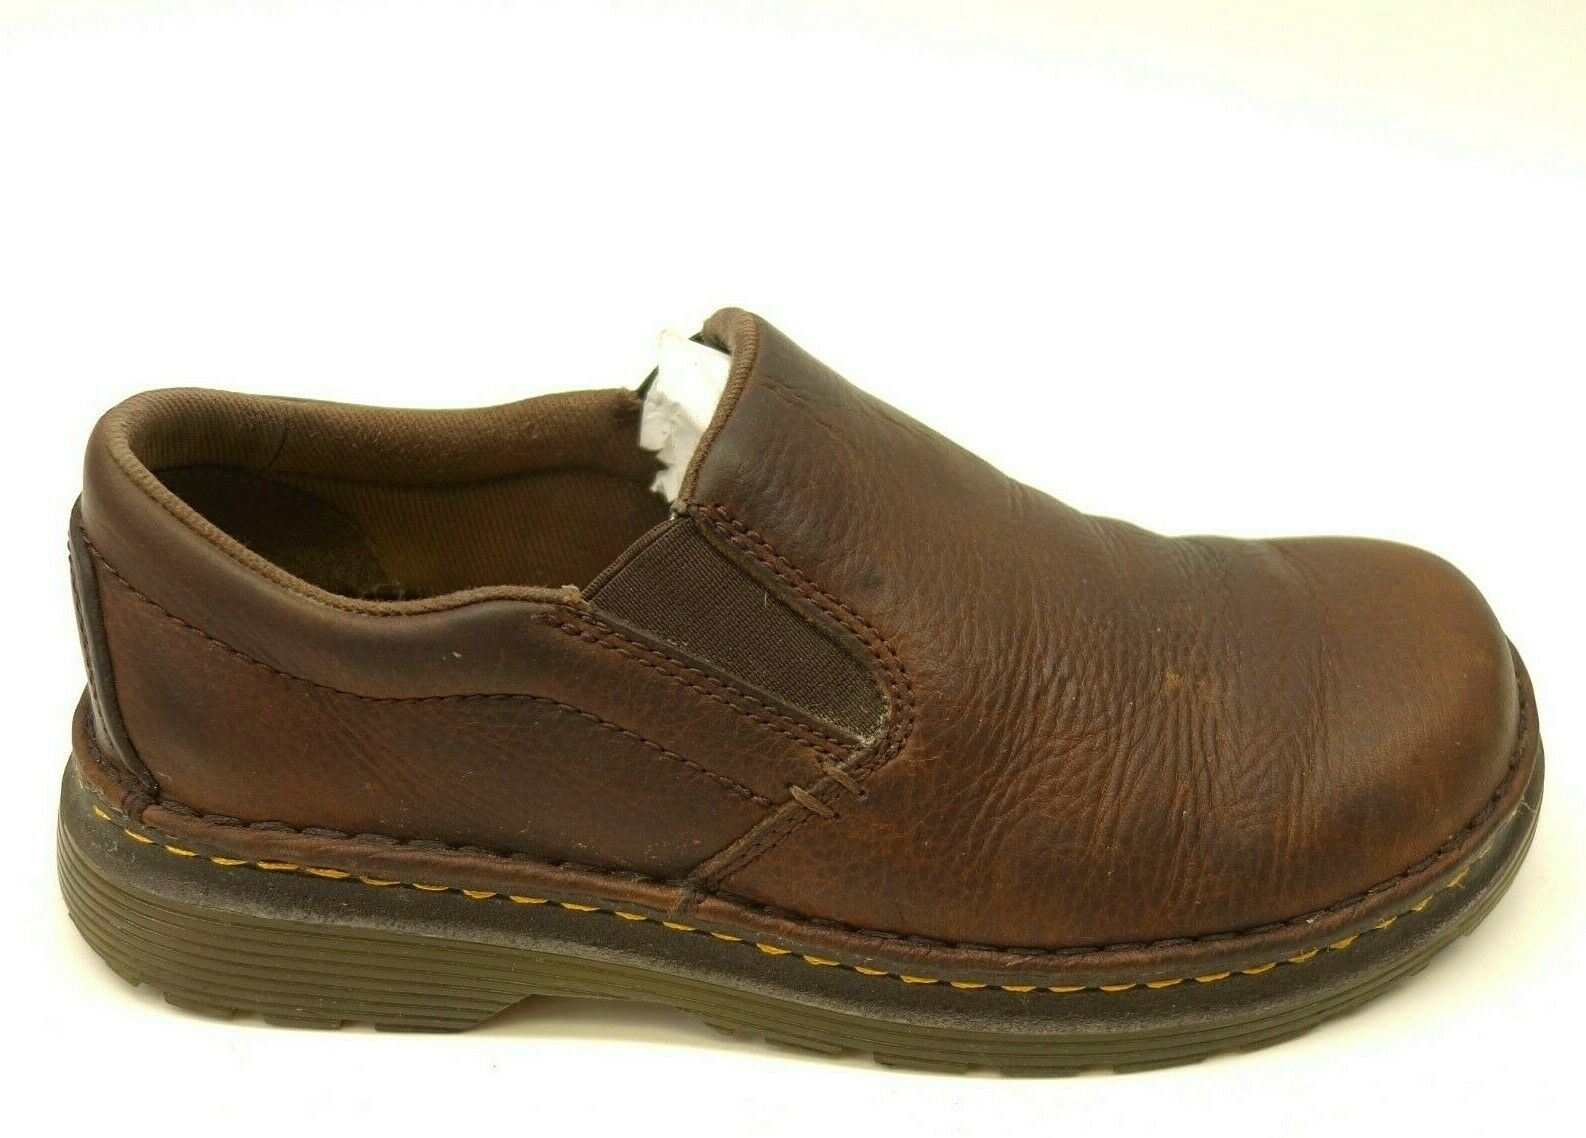 Dr. Martens Sz 7 Brown Boyle Grizzly Leather Extreme Comfort Work Womens shoes